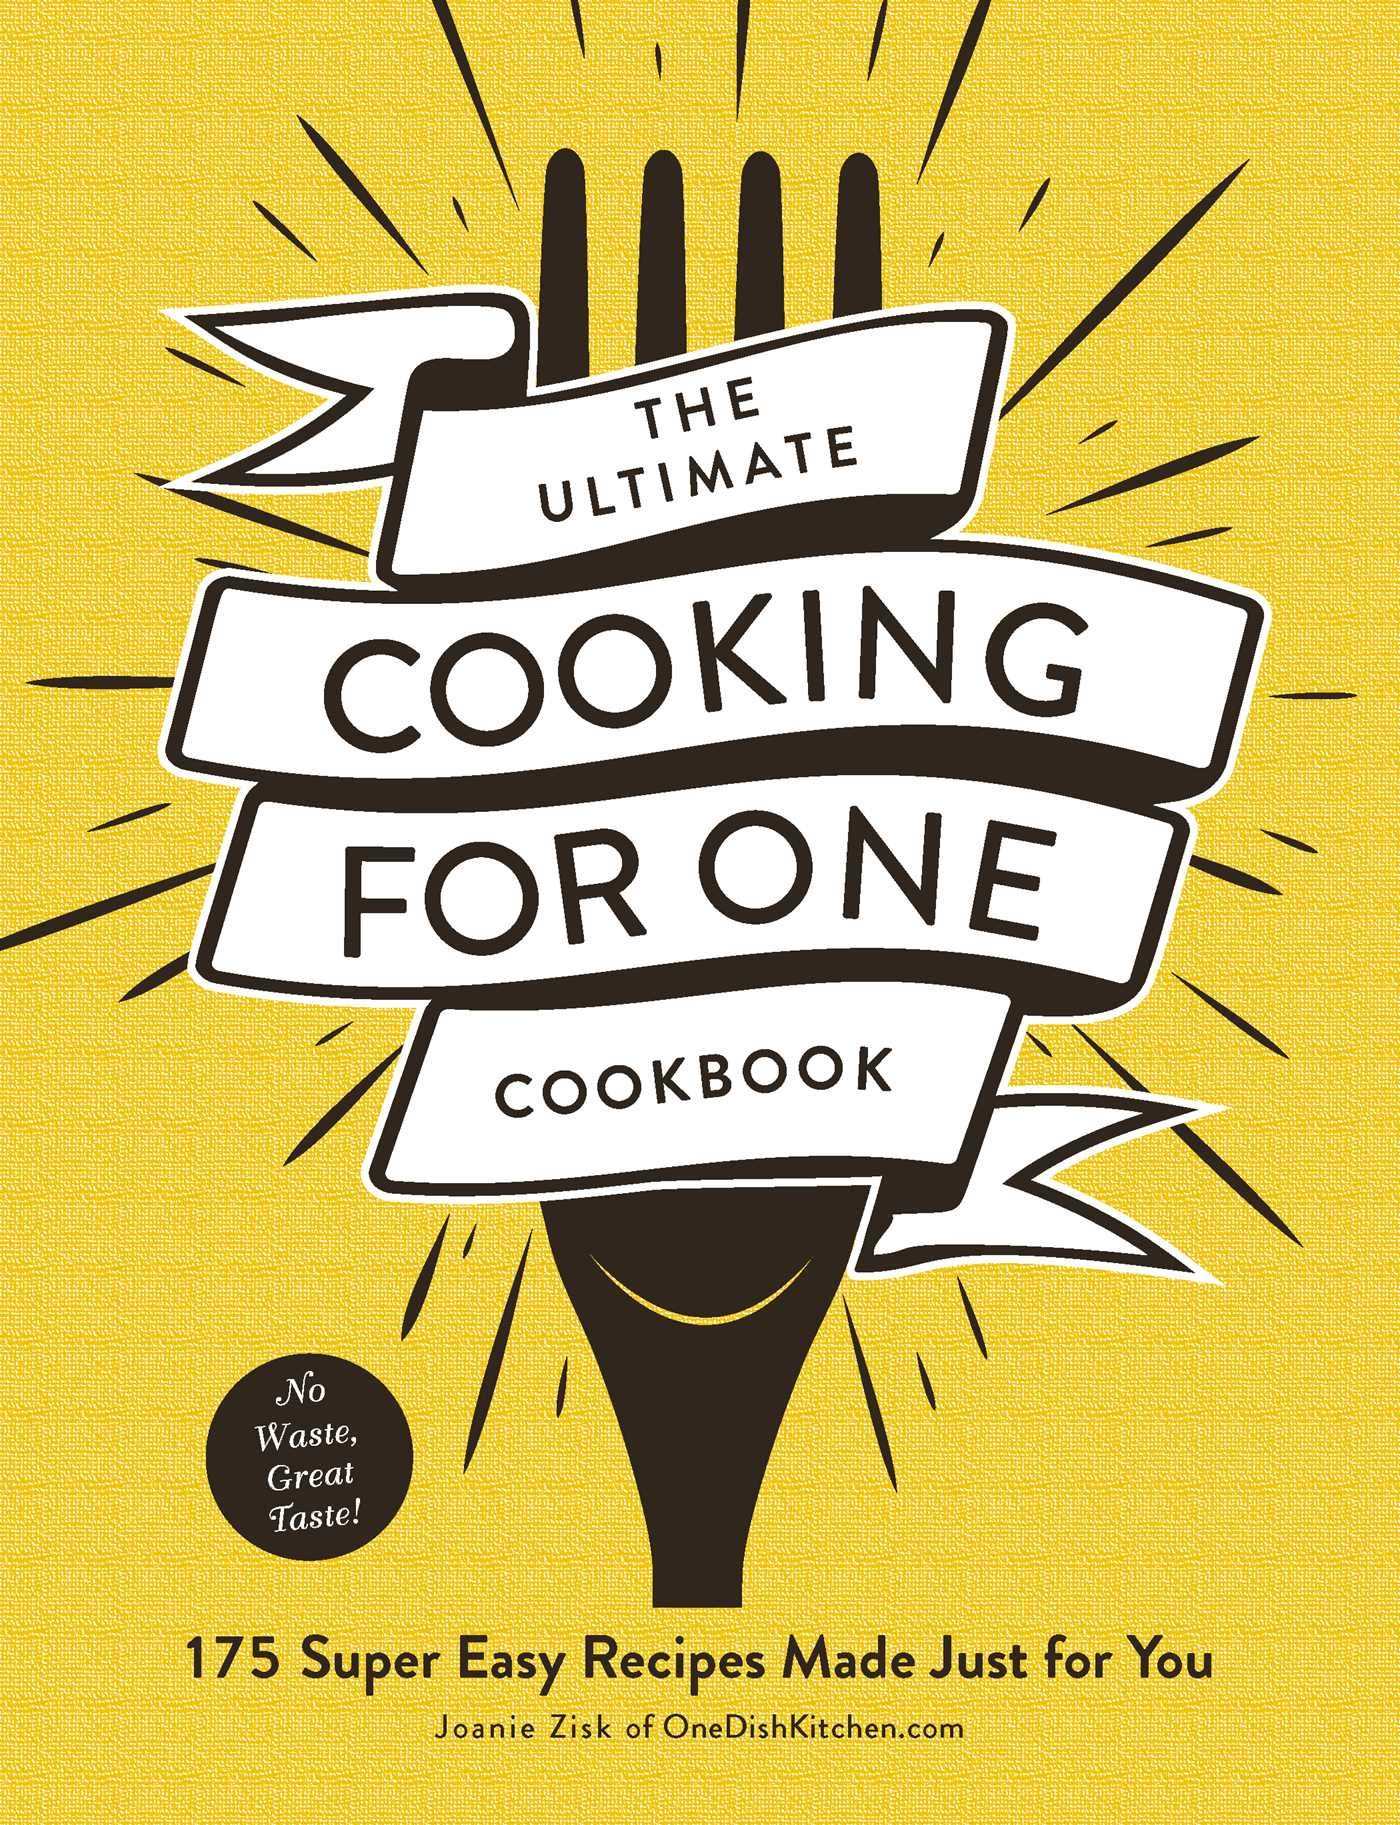 cooking for one amazon The Best Cooking for One Cookbooks For Tasty Single Serving Meals